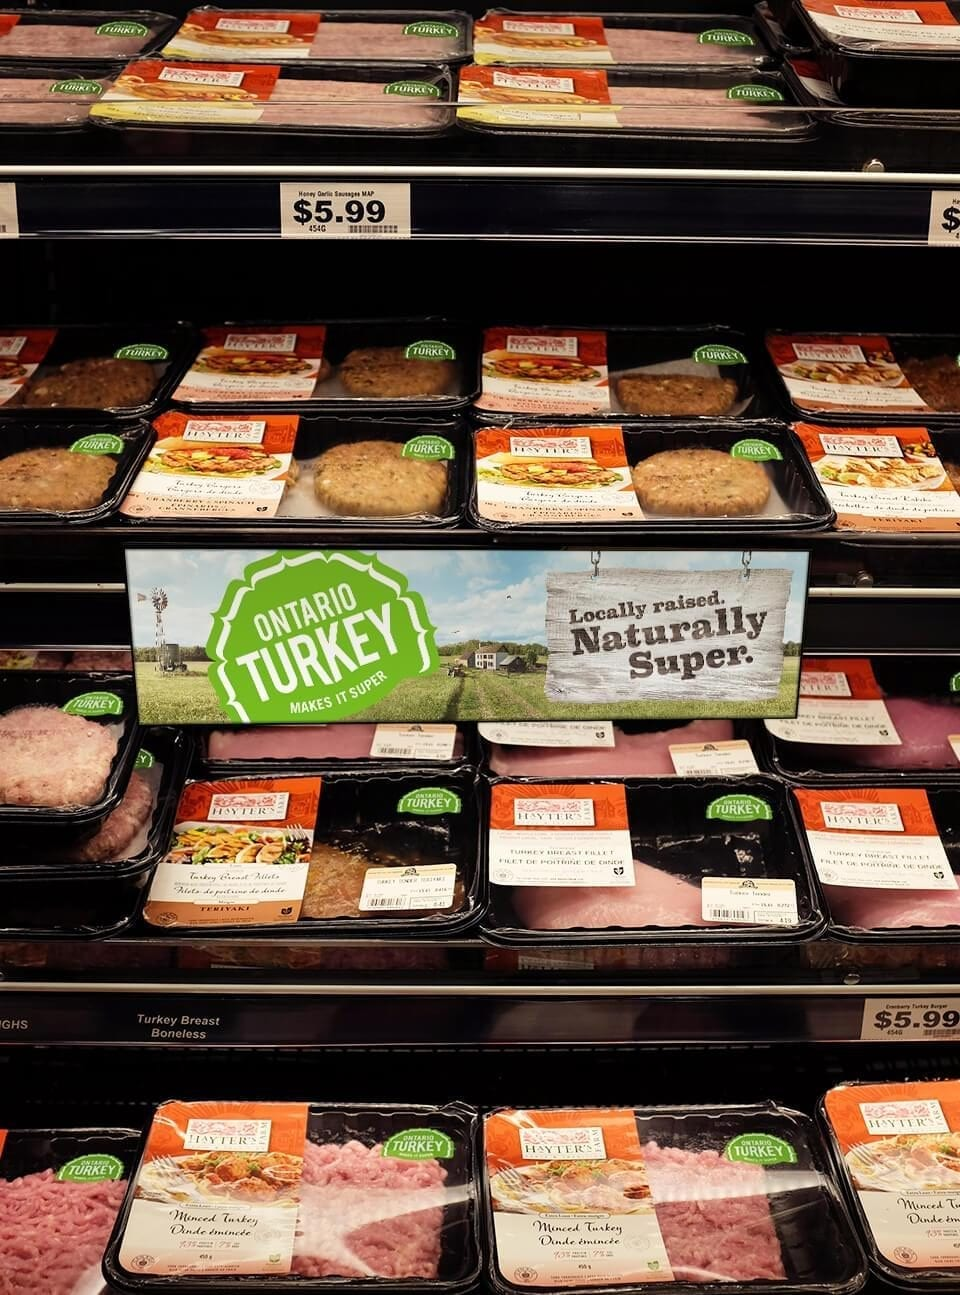 Ontario Turkey in-store shelf signage